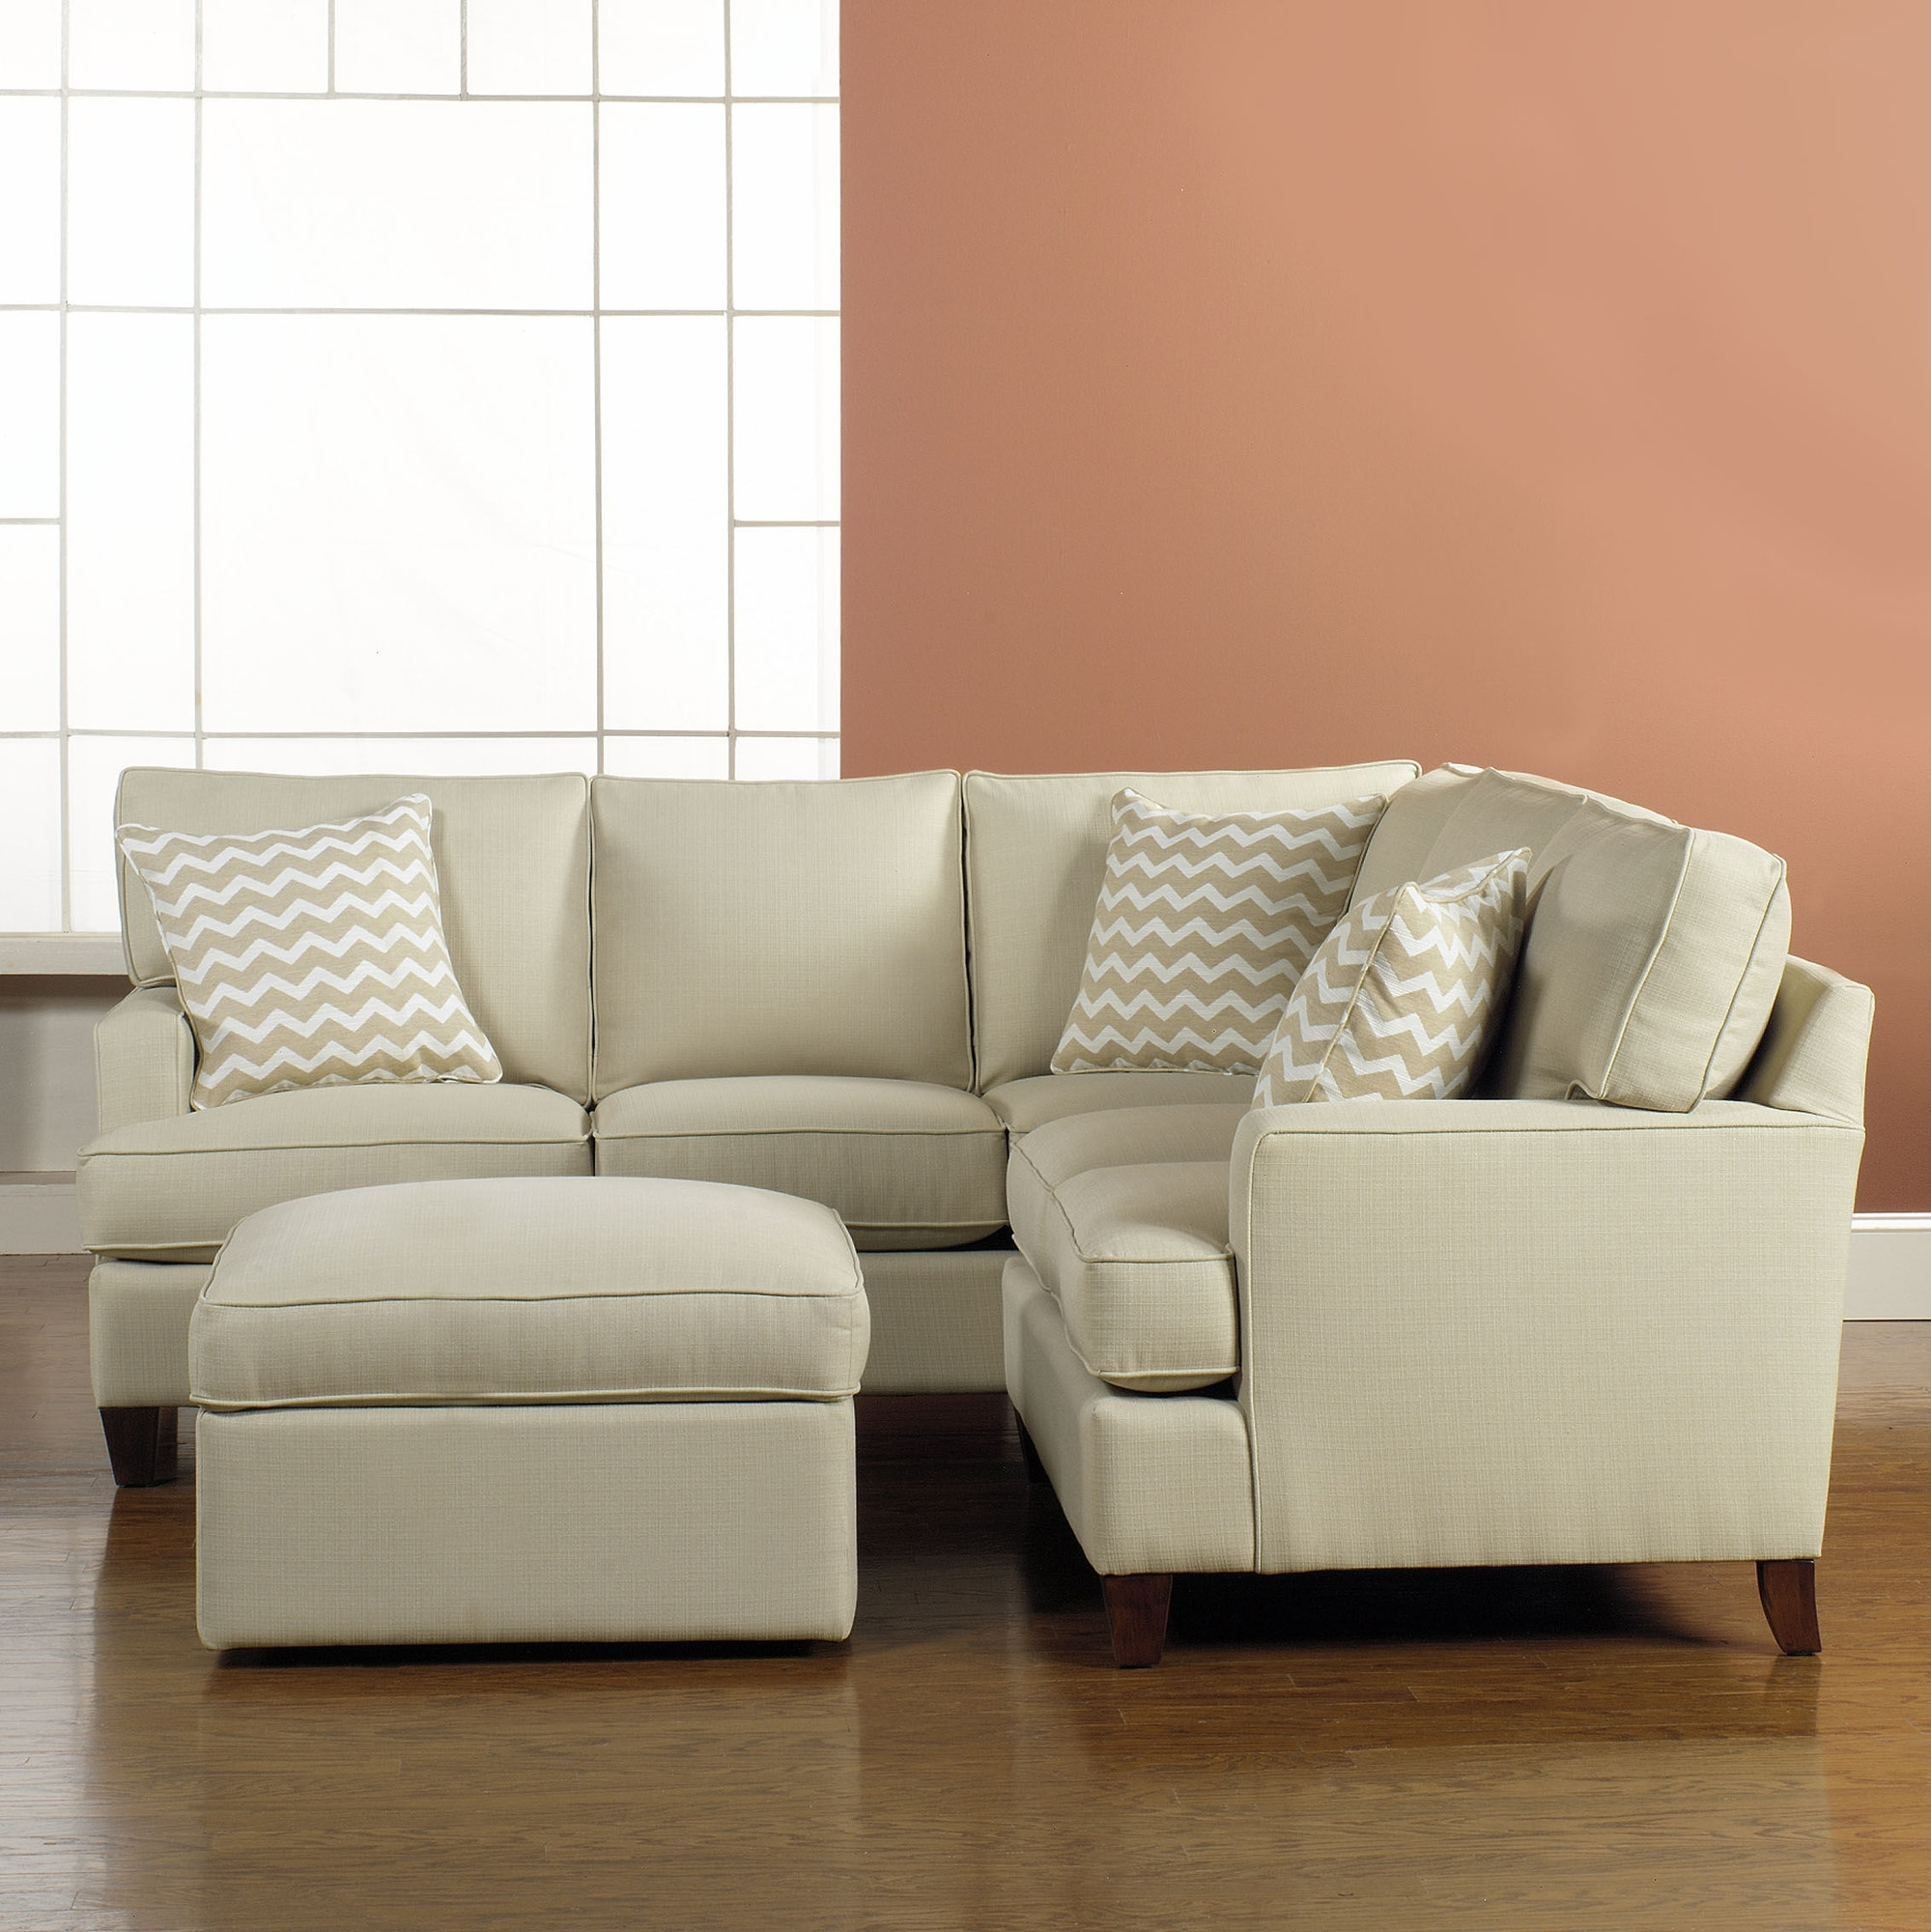 Narrow Sofas For Small Rooms | Catosfera Pertaining To Sectional Sofas For Small Doorways (View 8 of 10)